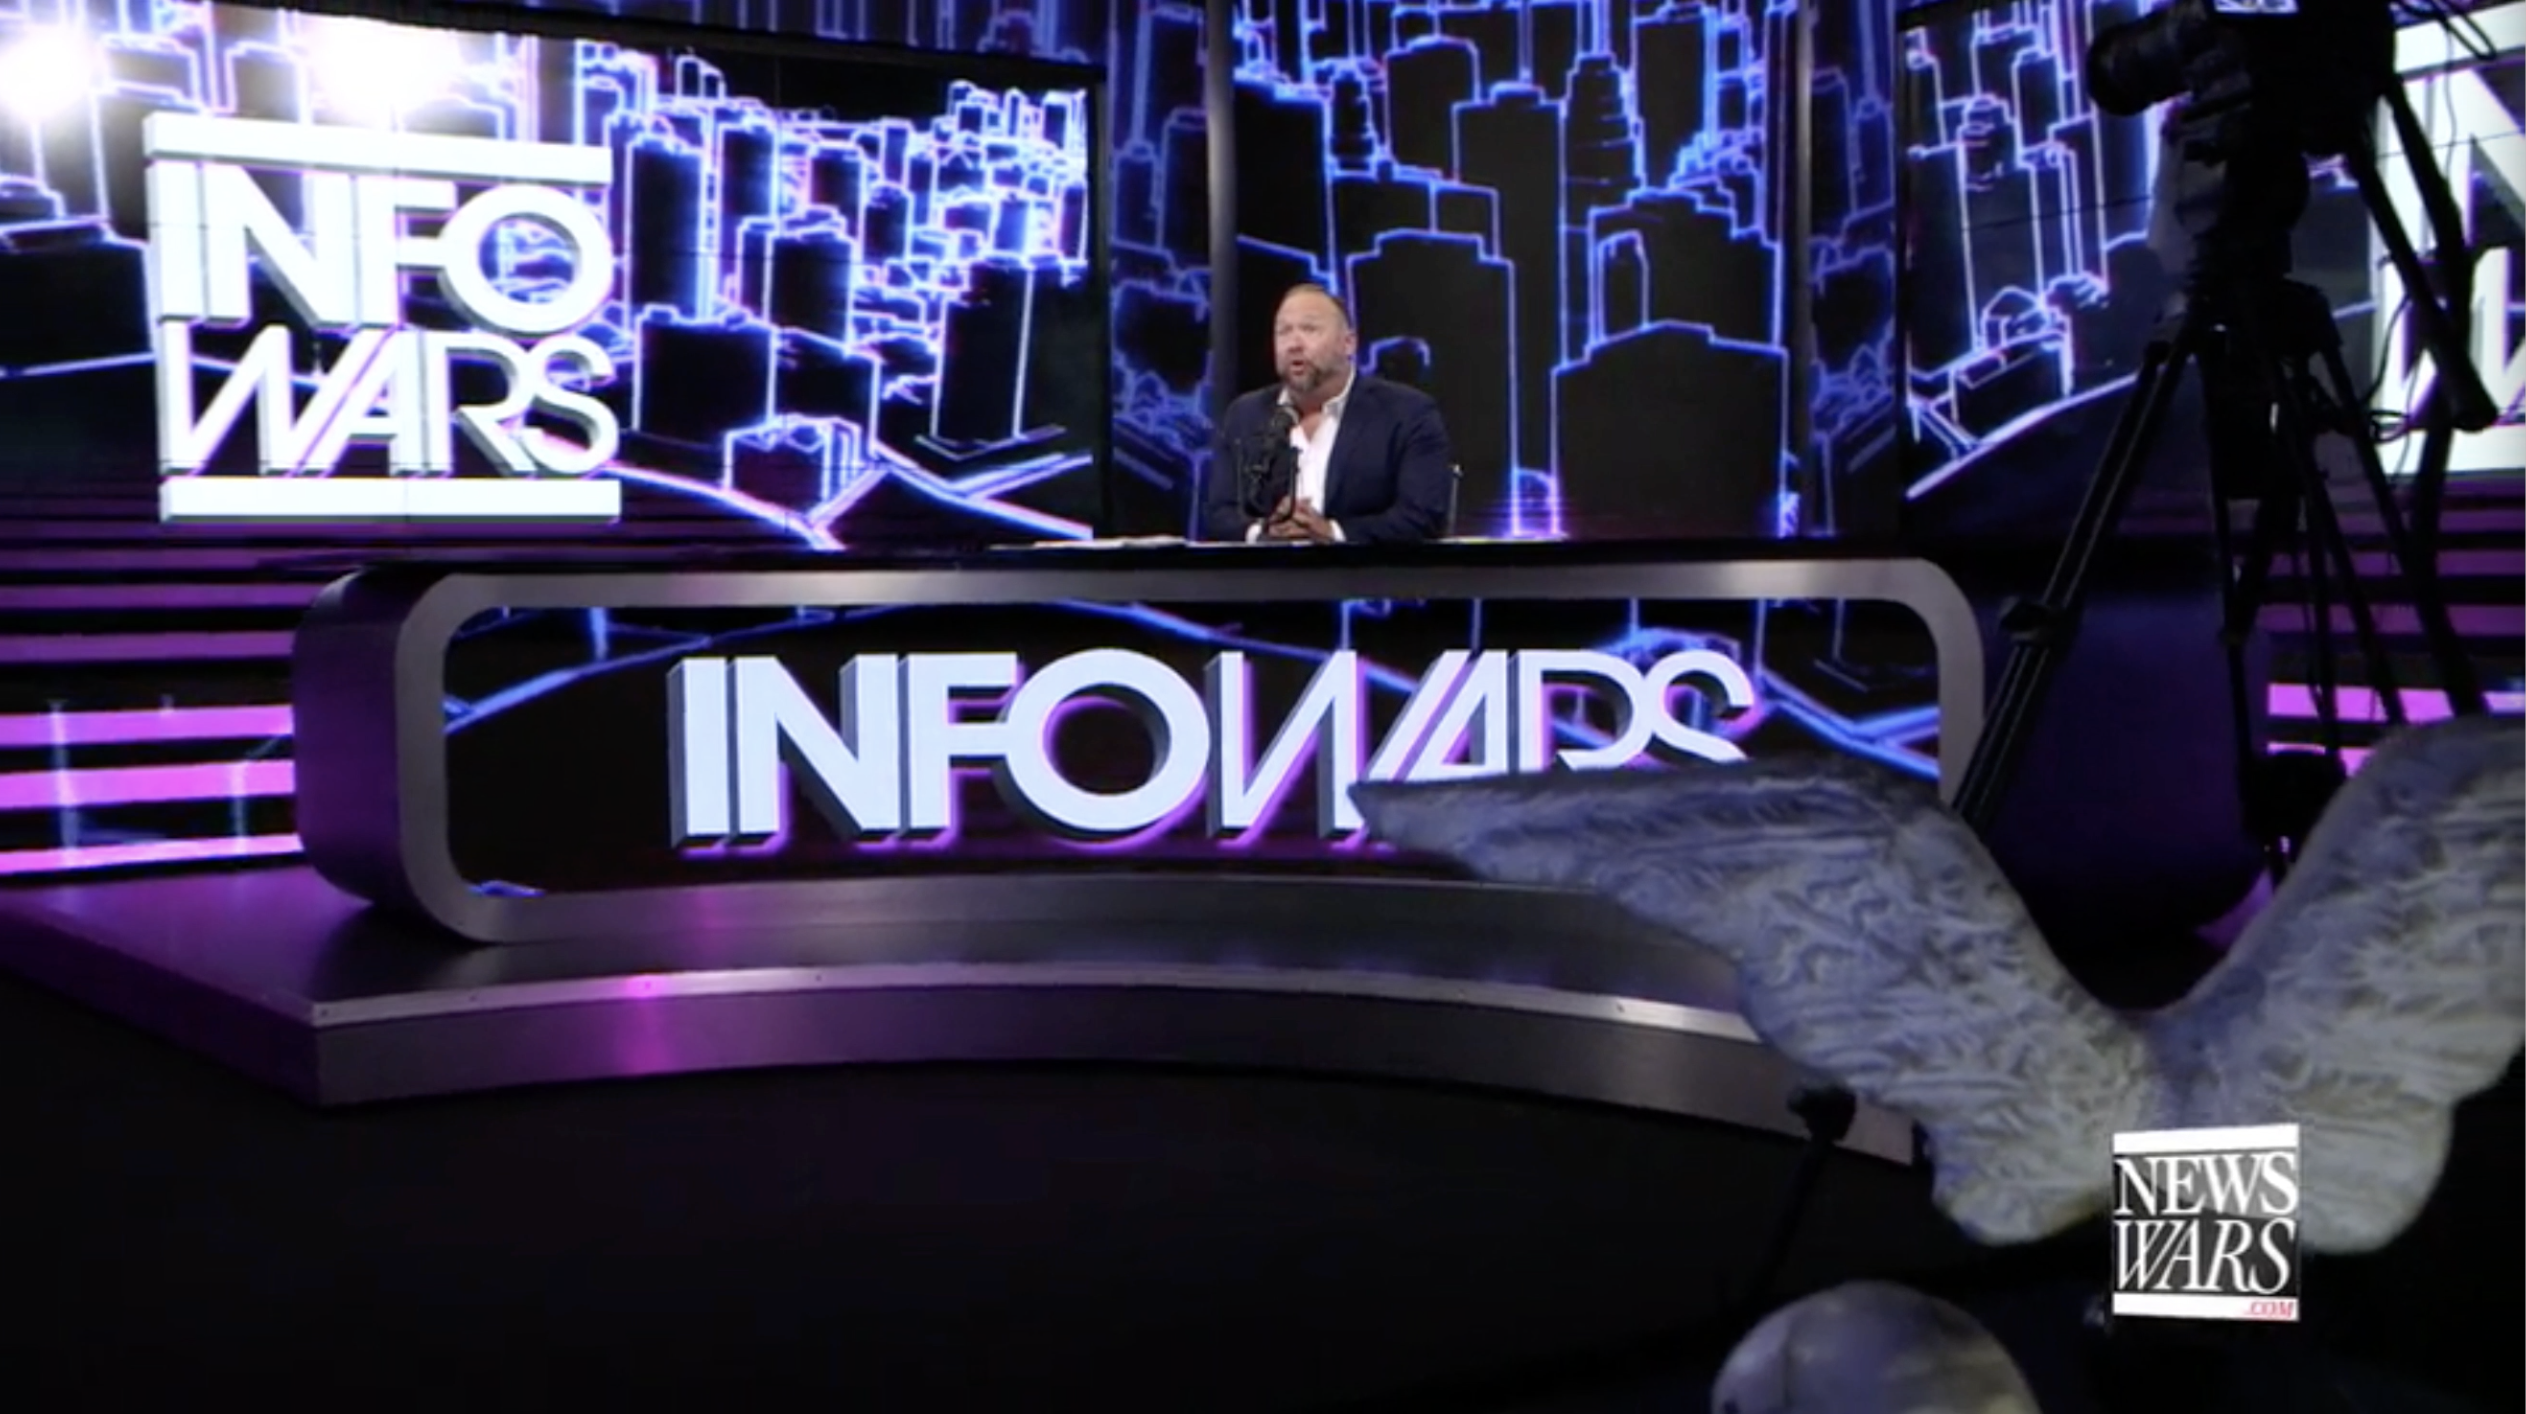 Alex Jones Infowars Studio EXZM September 10th 2020